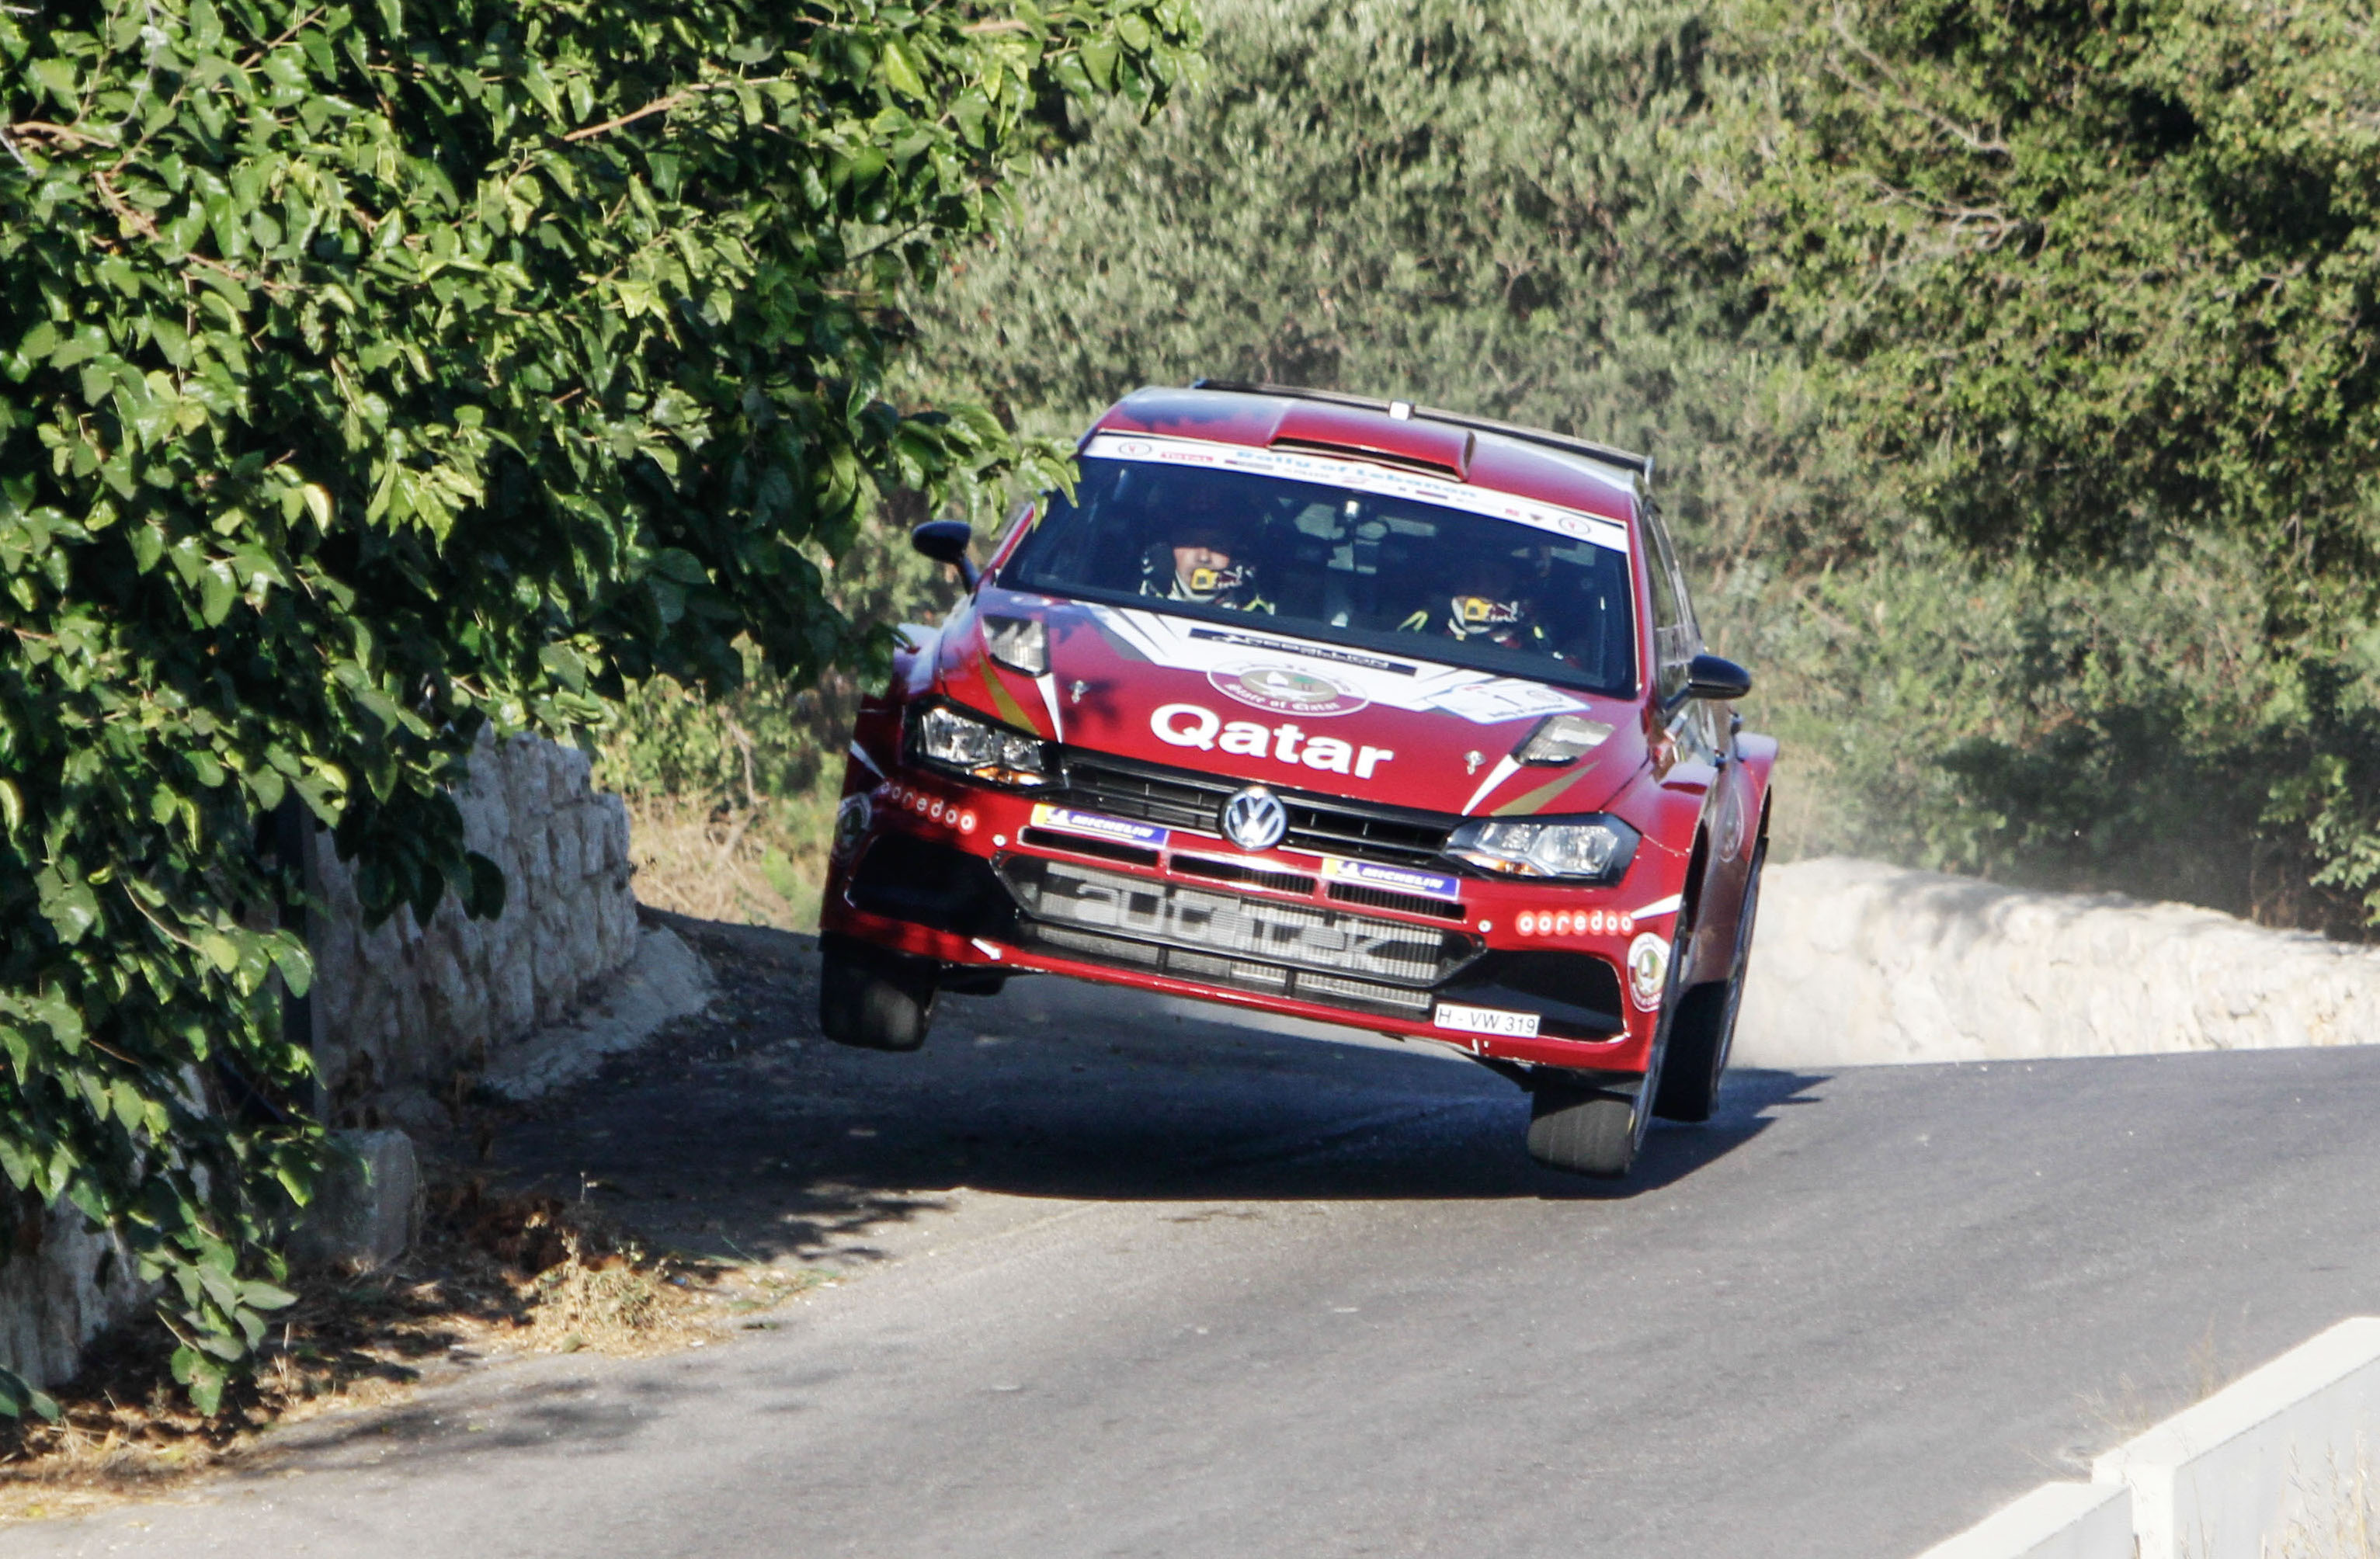 Cyprus Rally reference Al-Attiyah up for ERC success